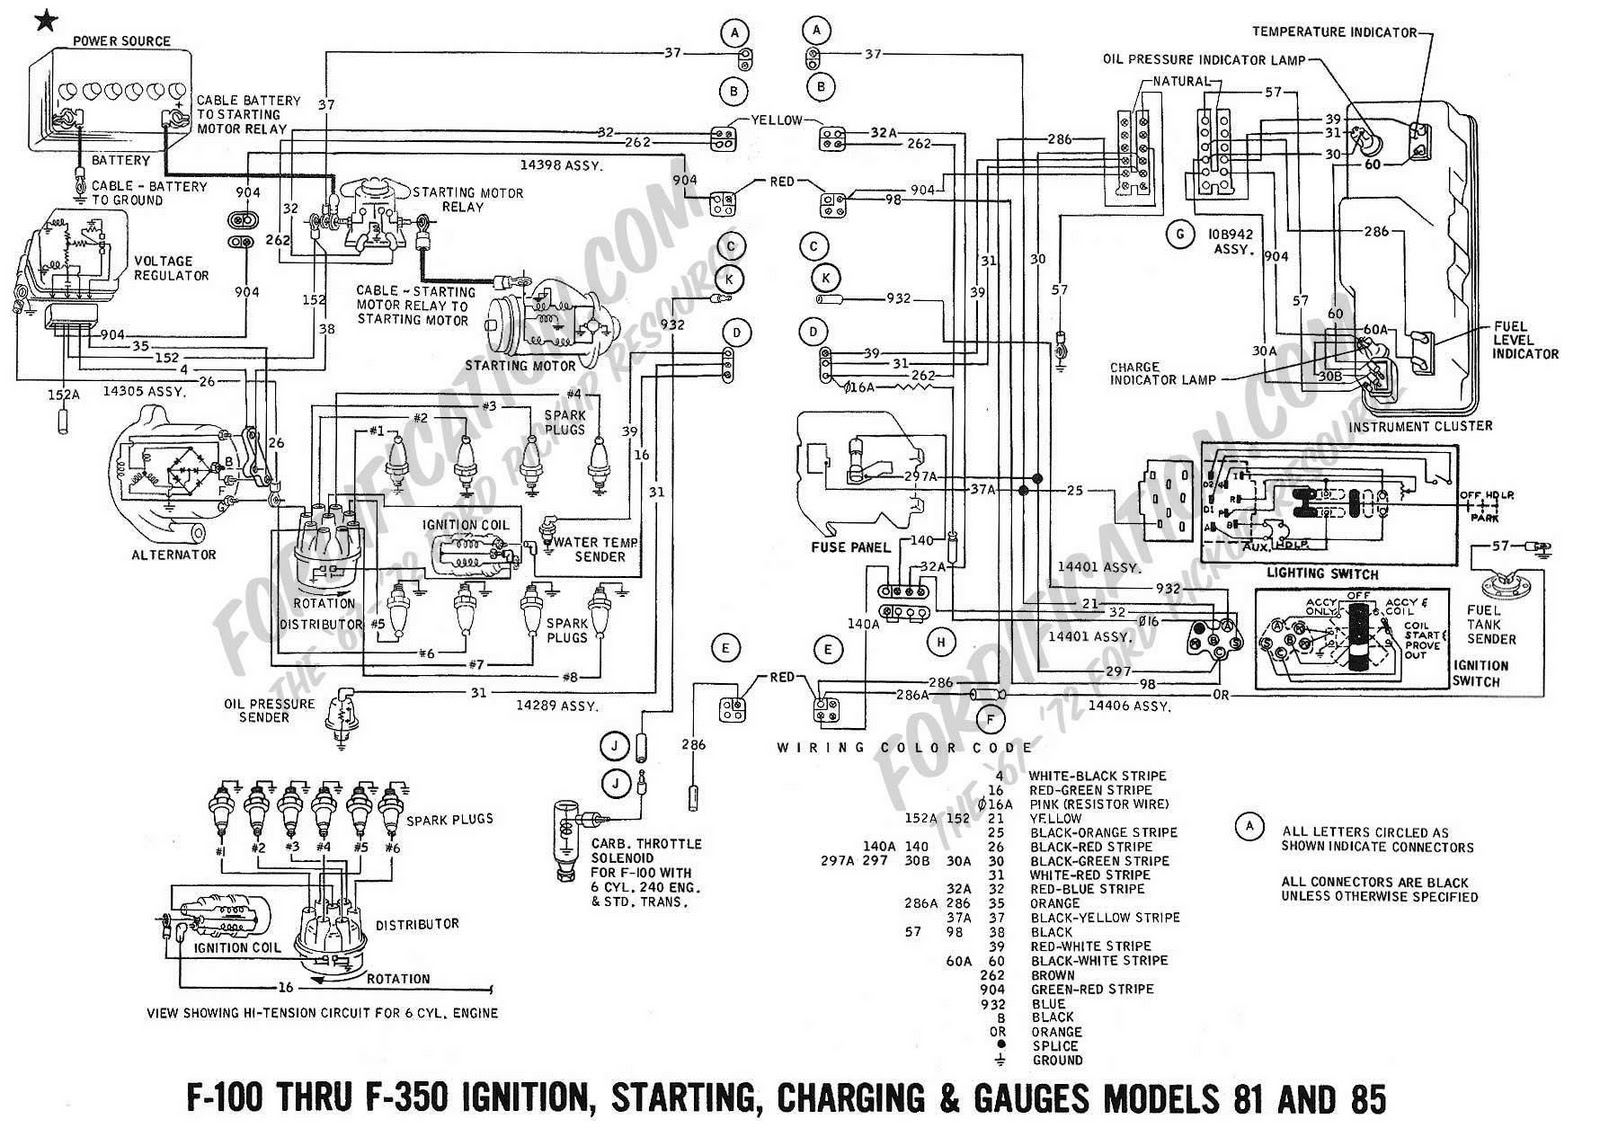 89 Ford E 250 Fuse Diagram 1988 Econoline Circuit Wiring And 1969 F100 F350 Ignition Starting Charging 1995 Van Box 1997 E250